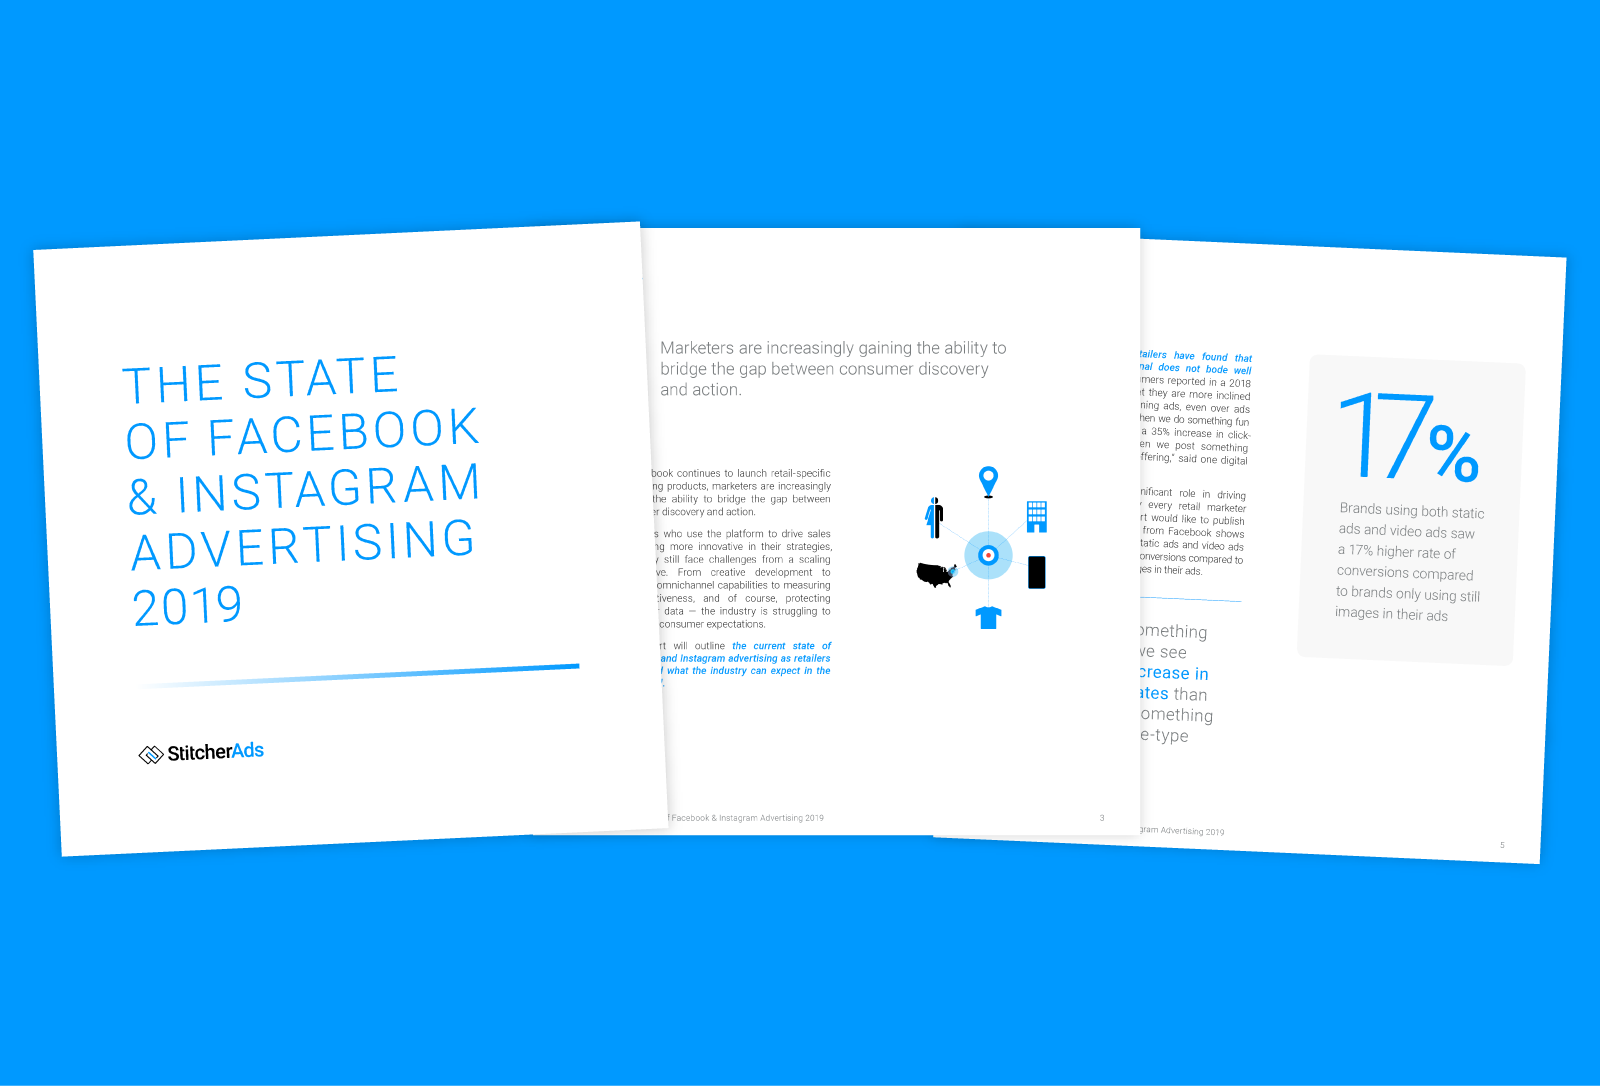 2019 state of facebook & instagram advertising